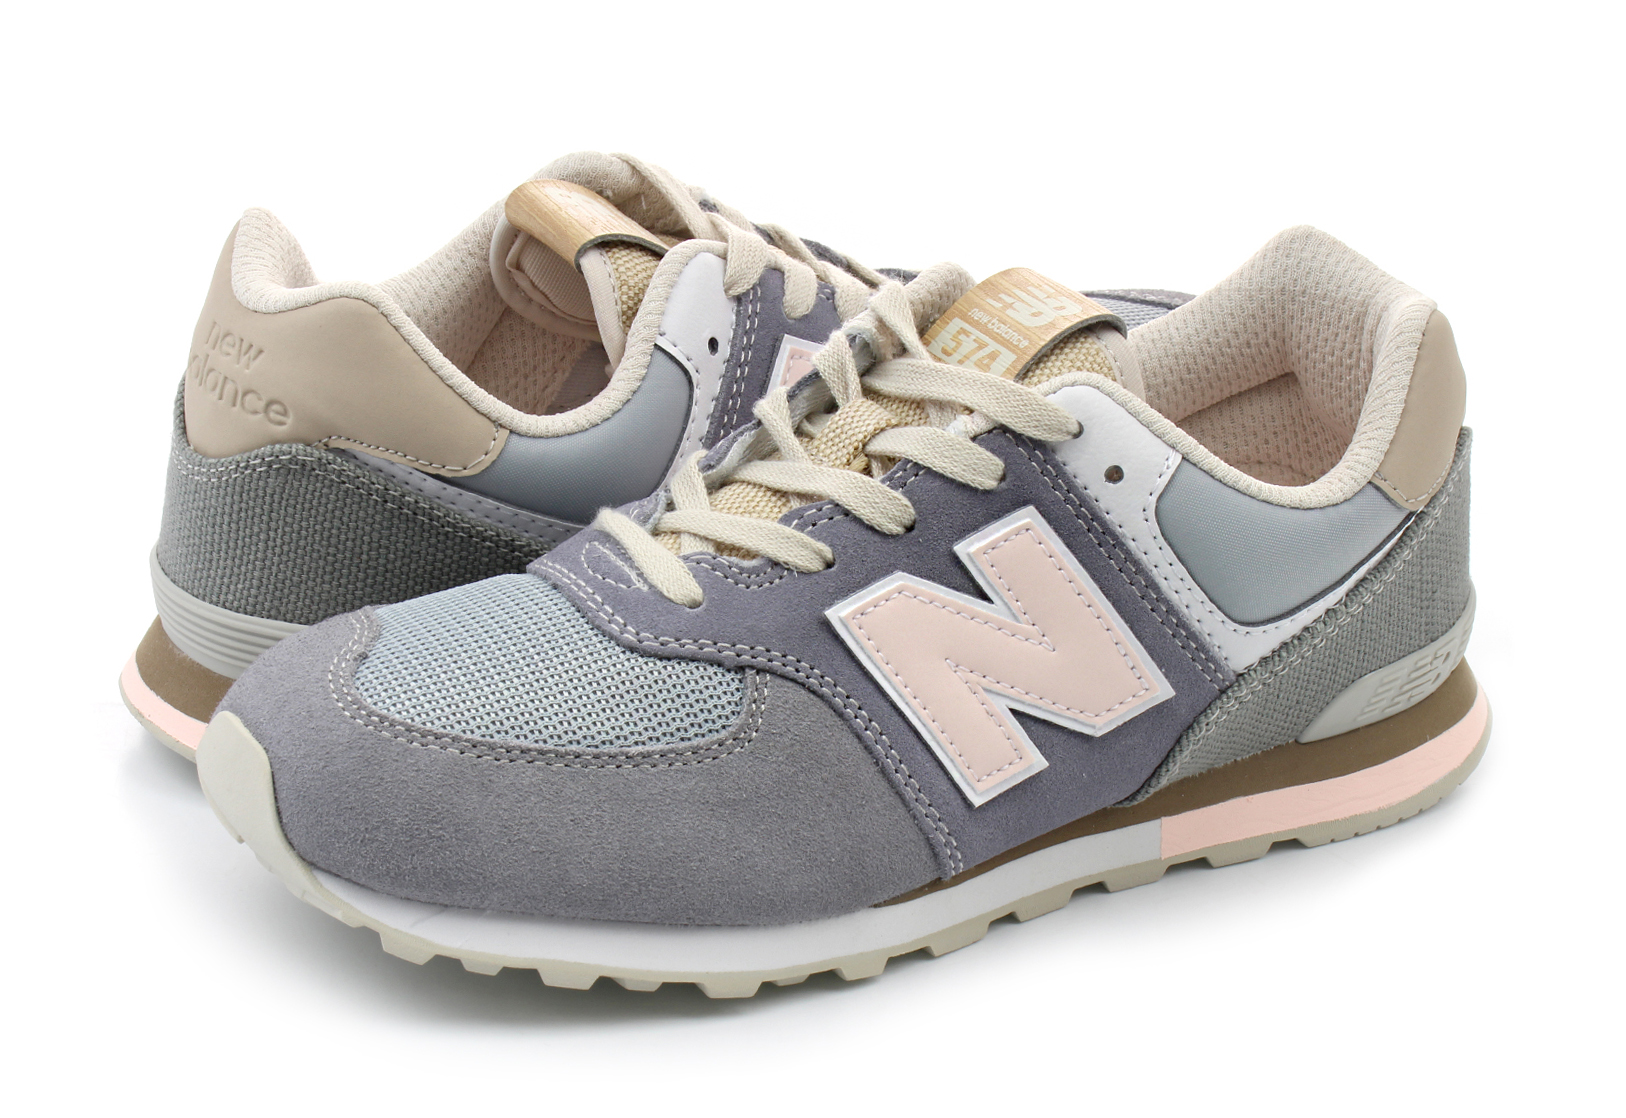 8f558a6b330adb New Balance Shoes - Gc574 - GC574SG - Online shop for sneakers ...